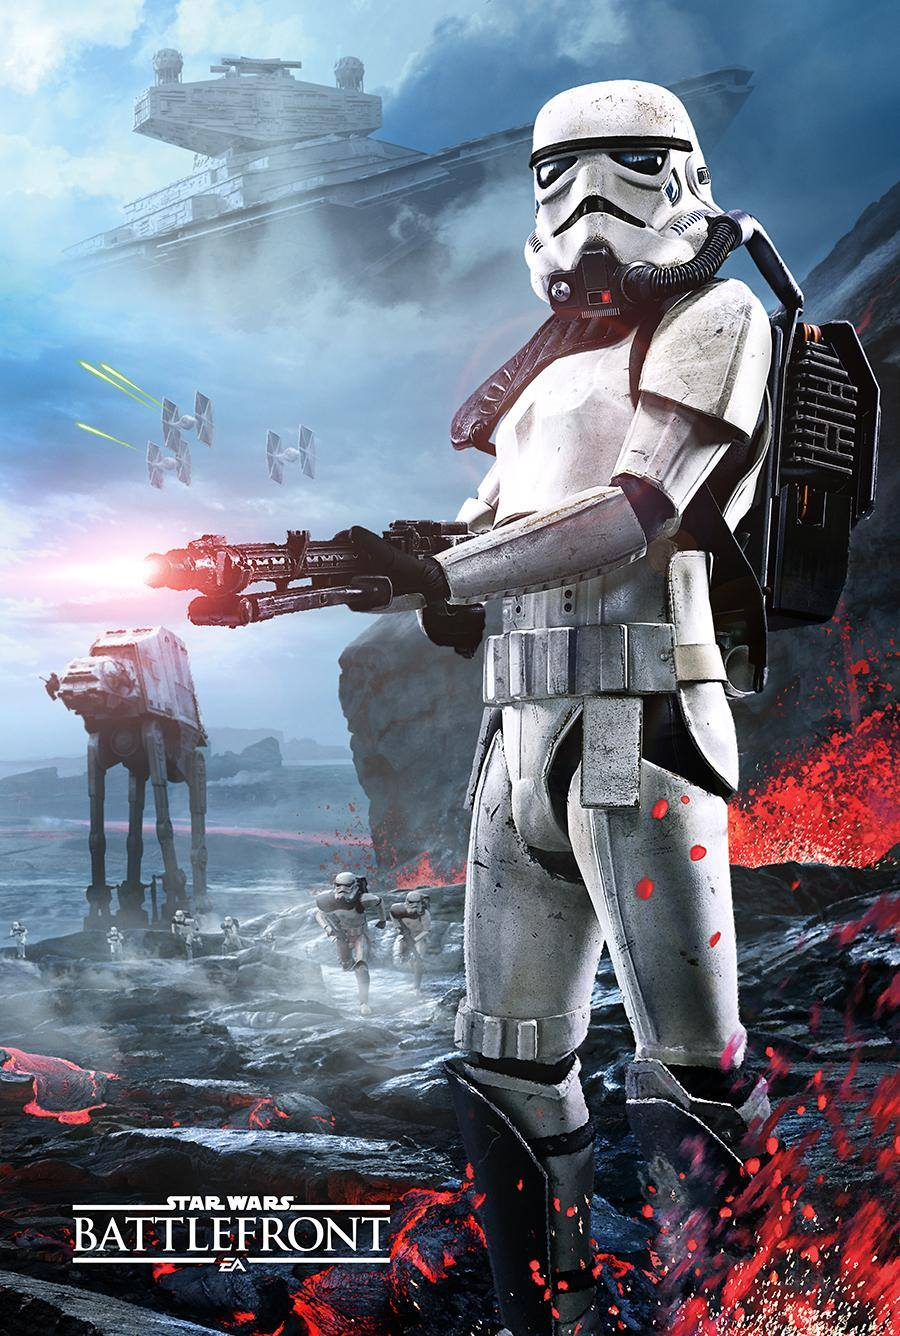 Star Wars: Battlefront poster